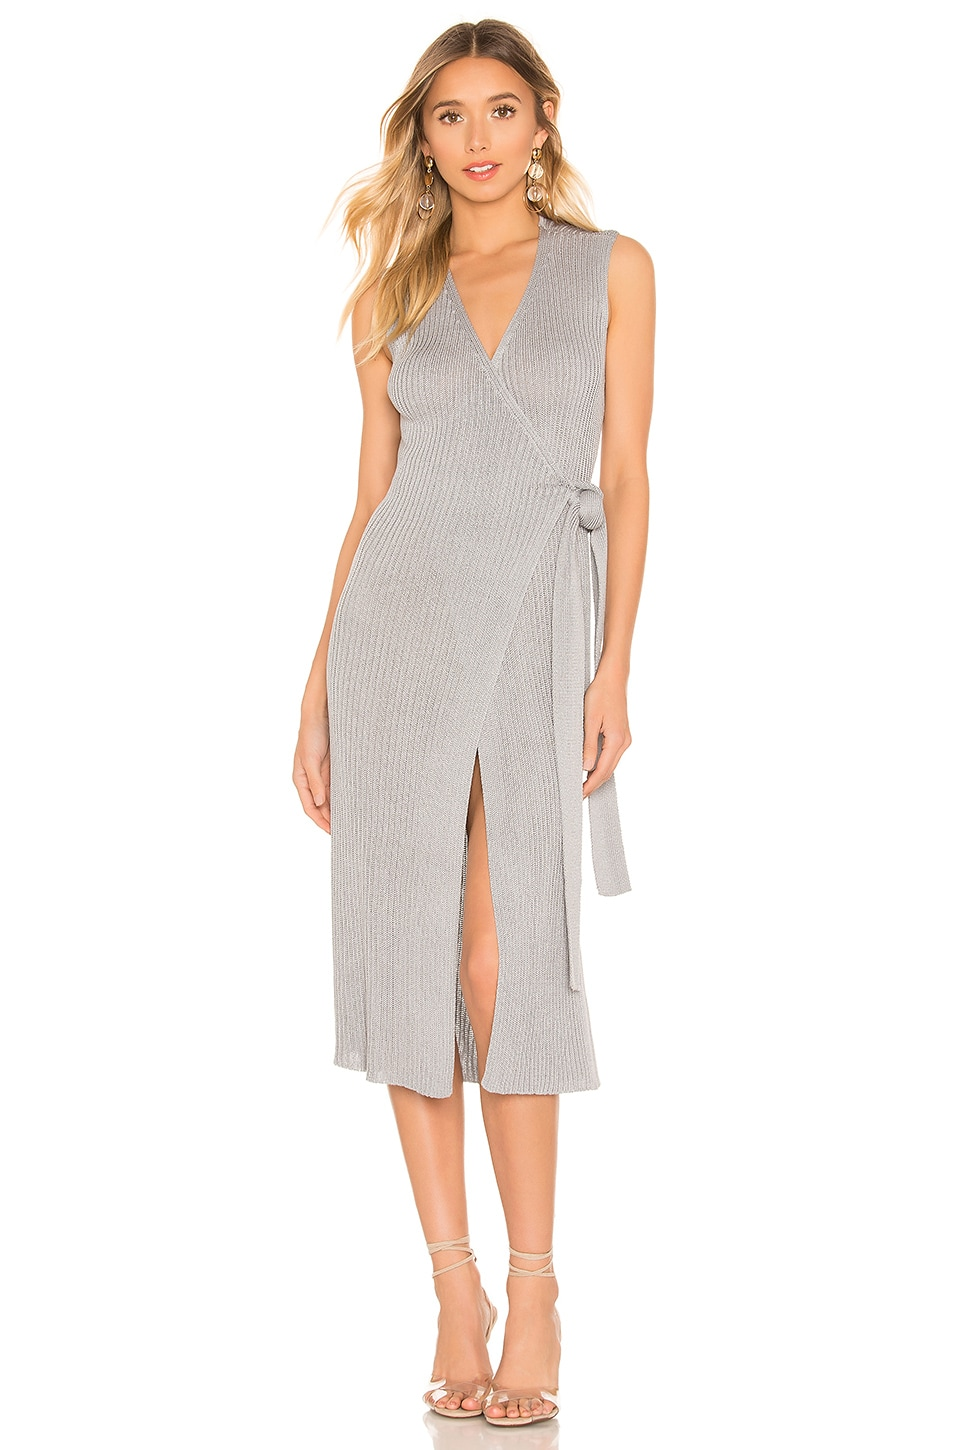 L'Academie Charlotte Wrap Dress in Grey